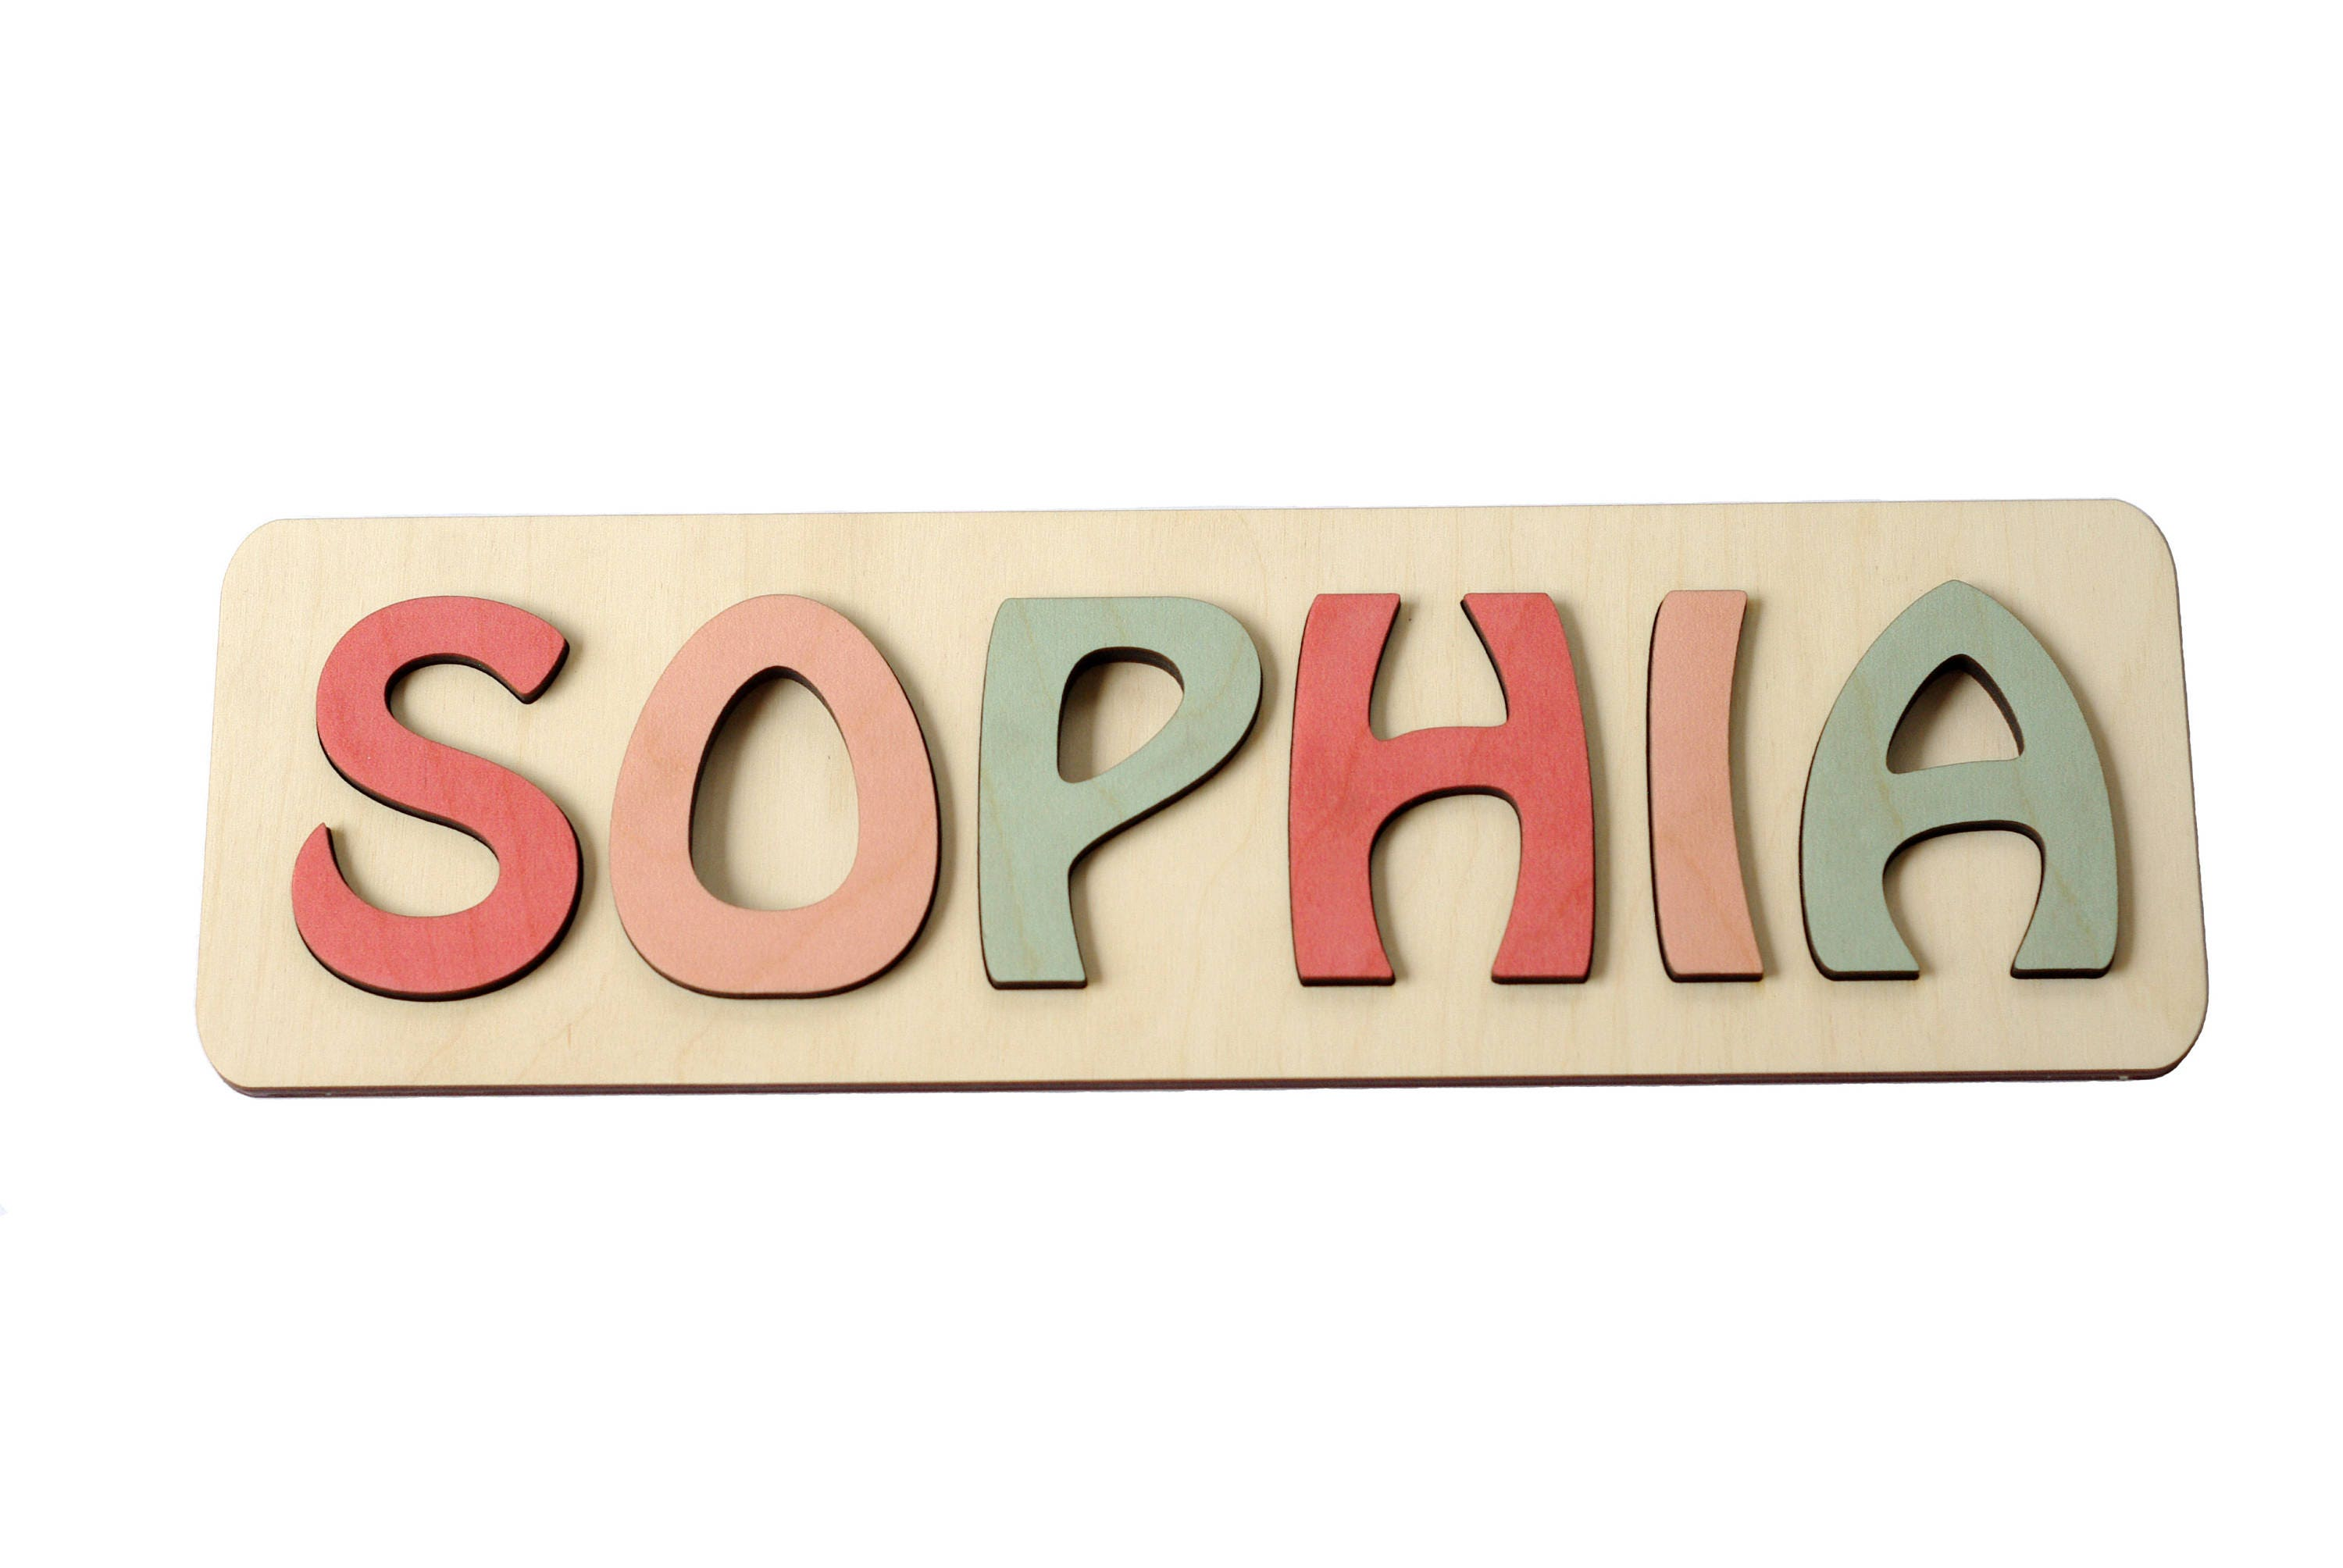 For kids and babies etsy personalized name puzzle name personaziled toy personalized baby name wooden custom name negle Images